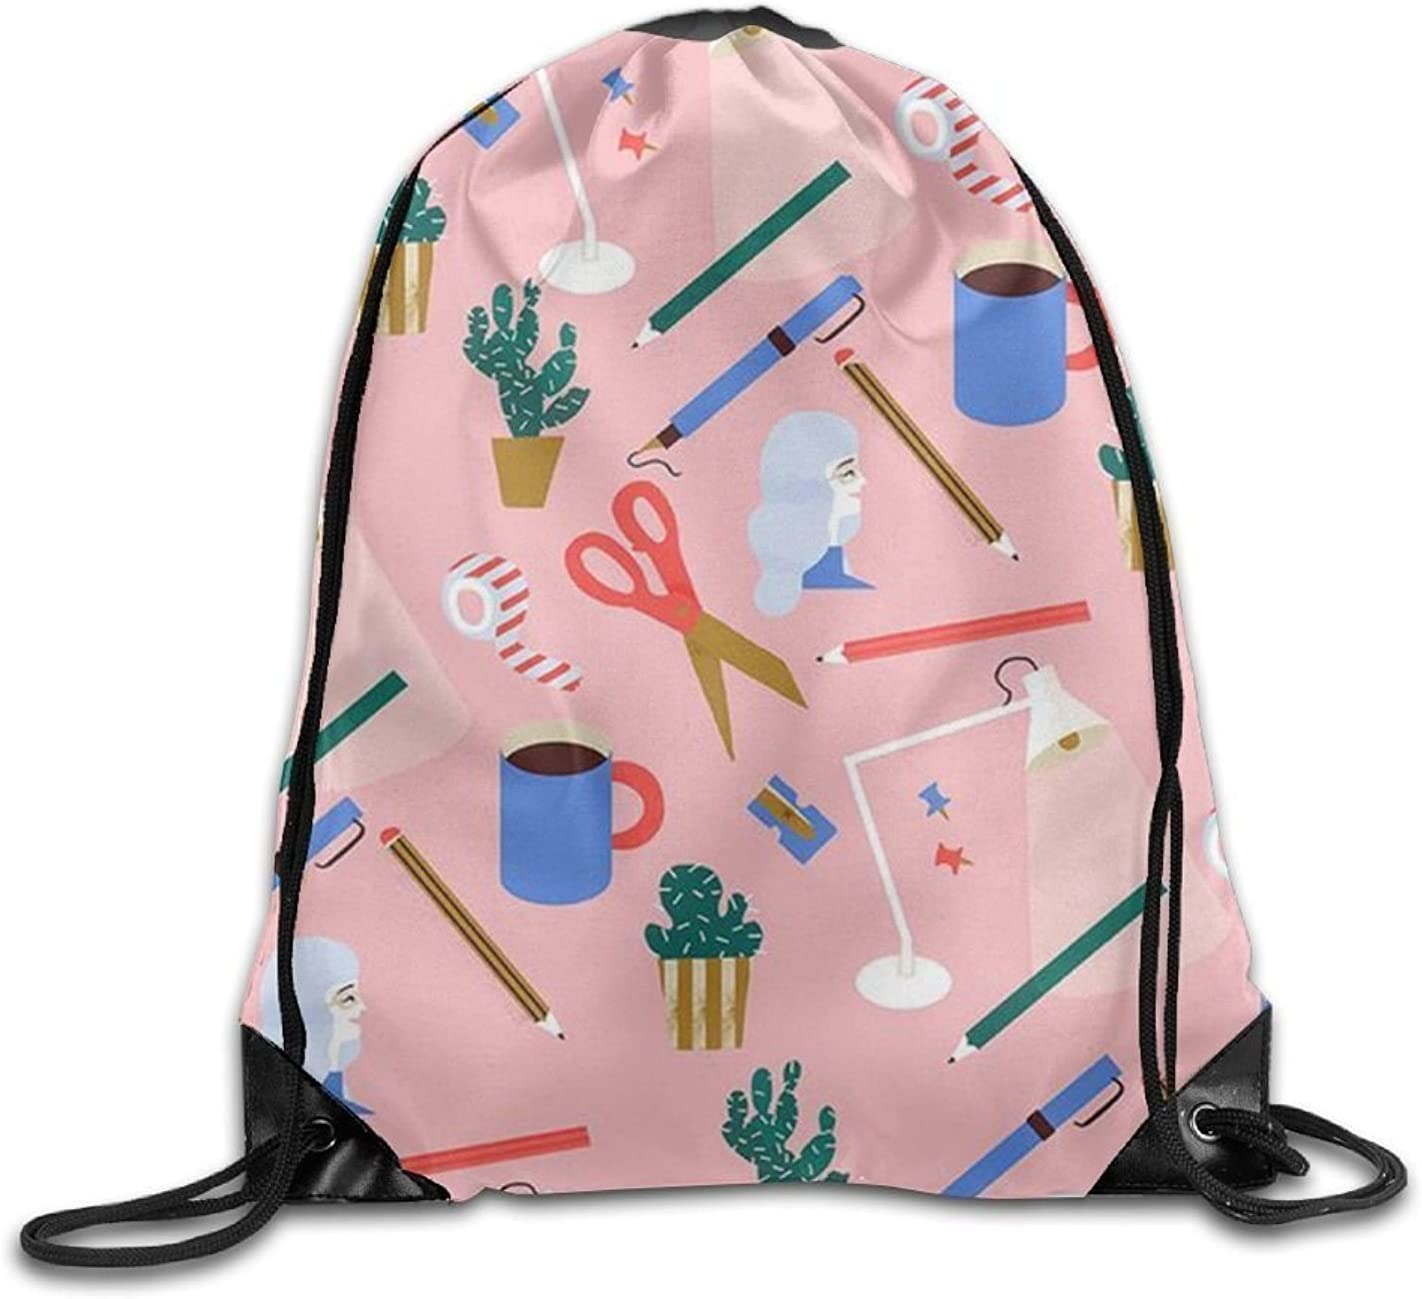 Ping Pong Printed Cute Drawstring Backpack Teen Girl Lightweight